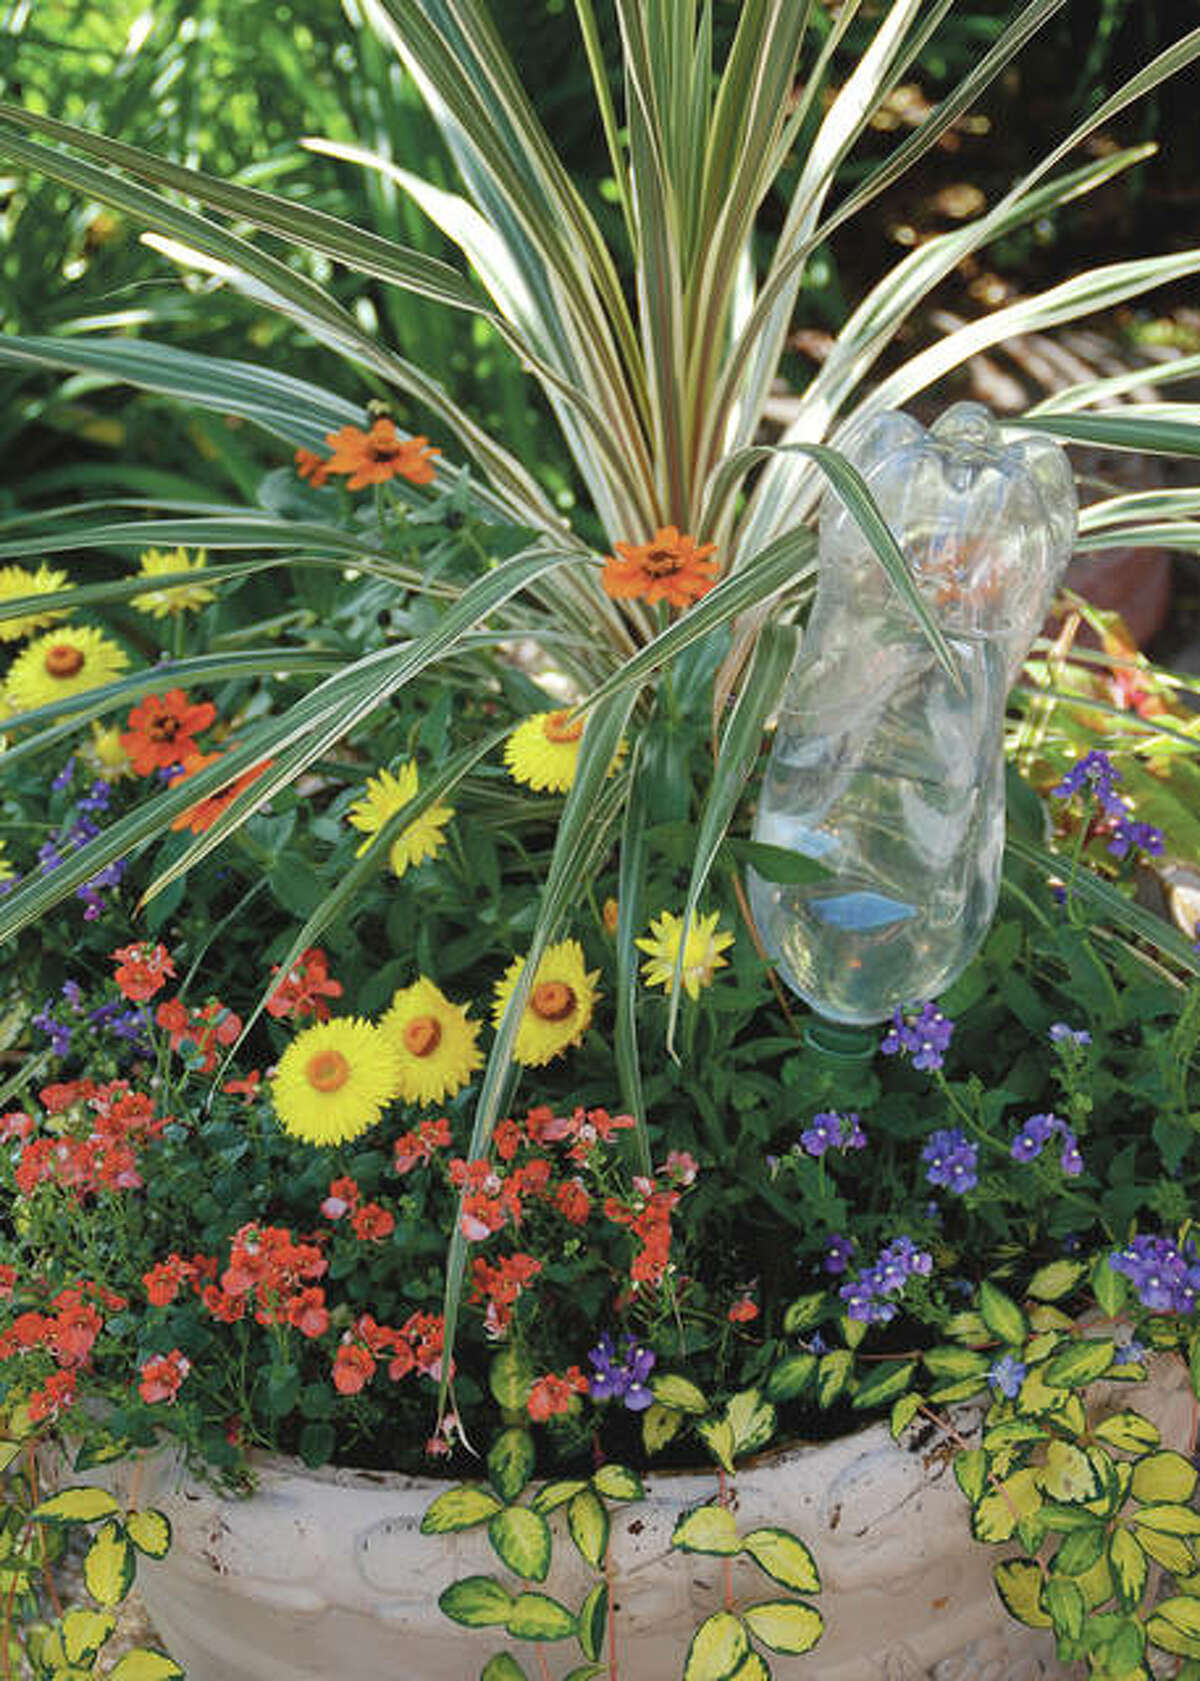 Water or wine bottles can be combined with commercial products to help regulate the flow of water to container gardens while away on vacation.